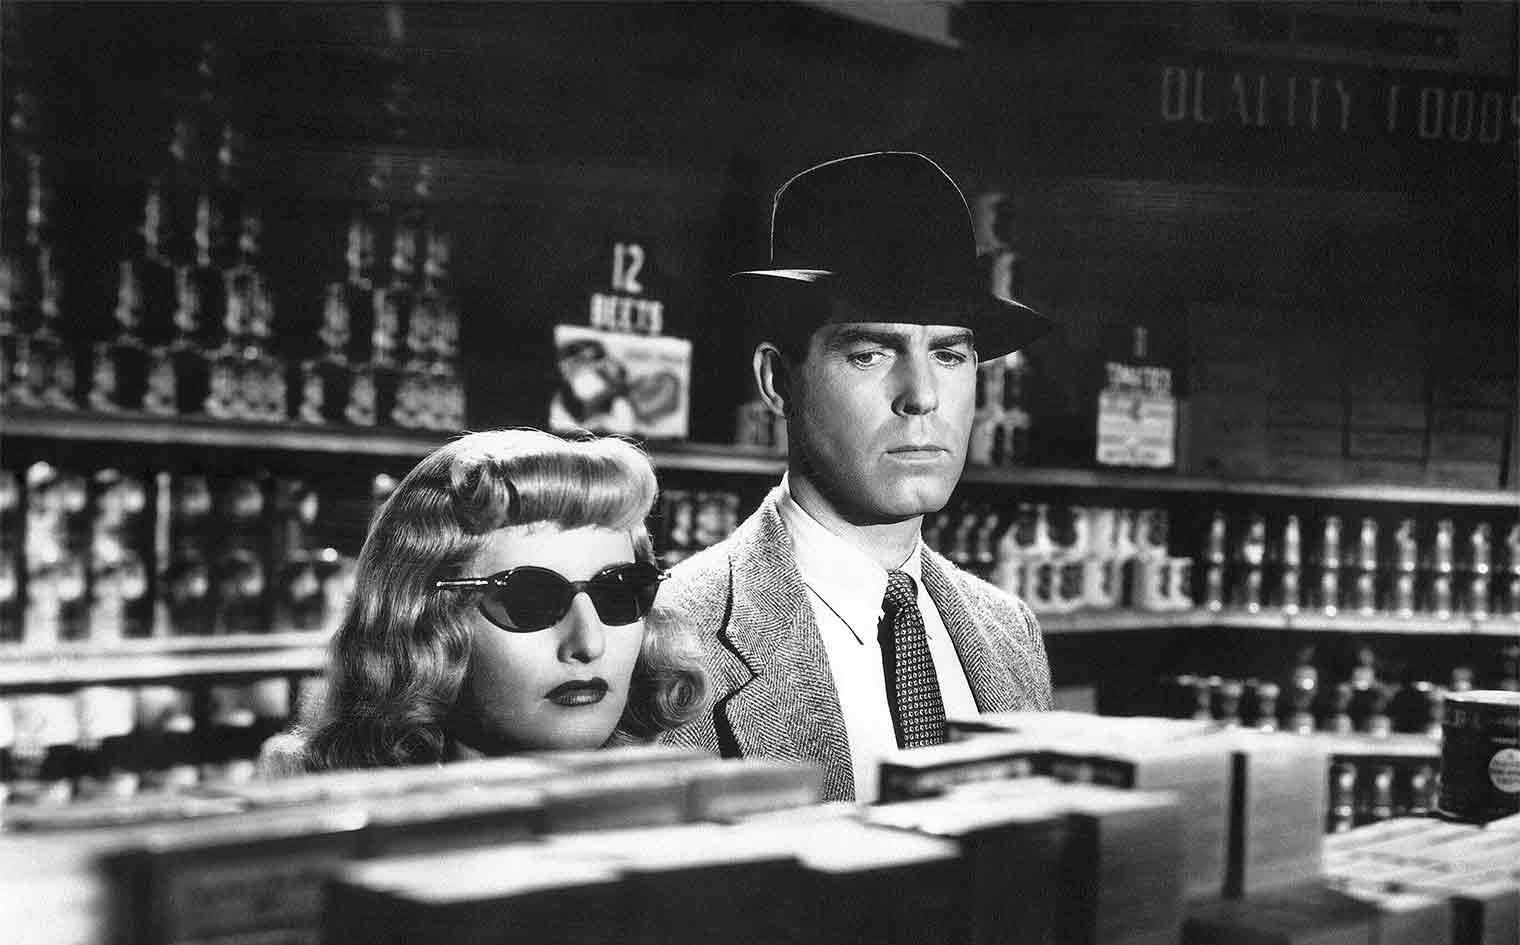 Double Indemnity is the best reviewed film noir movie on our page.